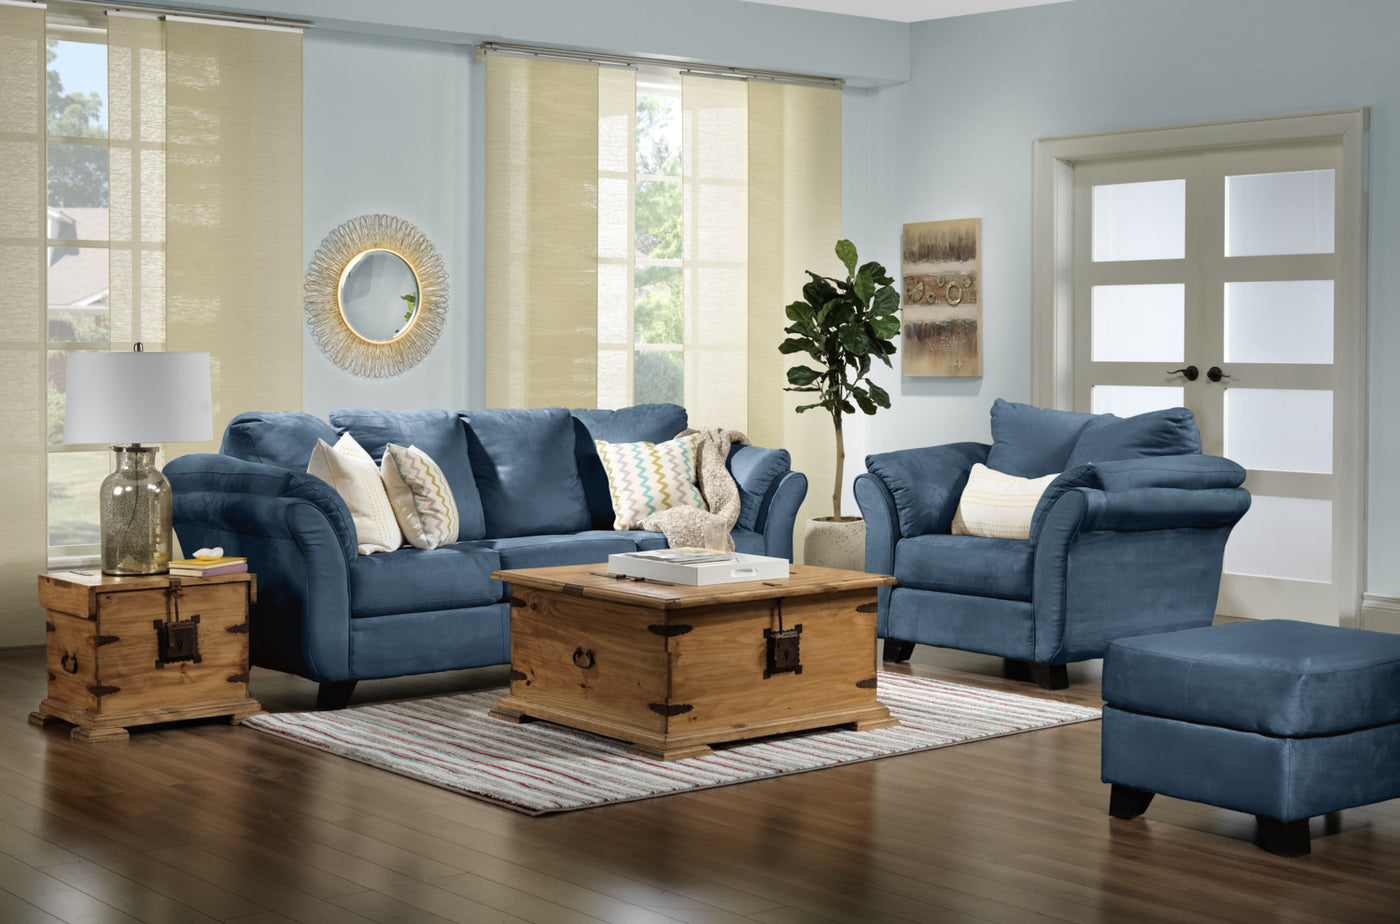 Collier sofa loveseat and chair set cobalt blue touch to zoom previous next